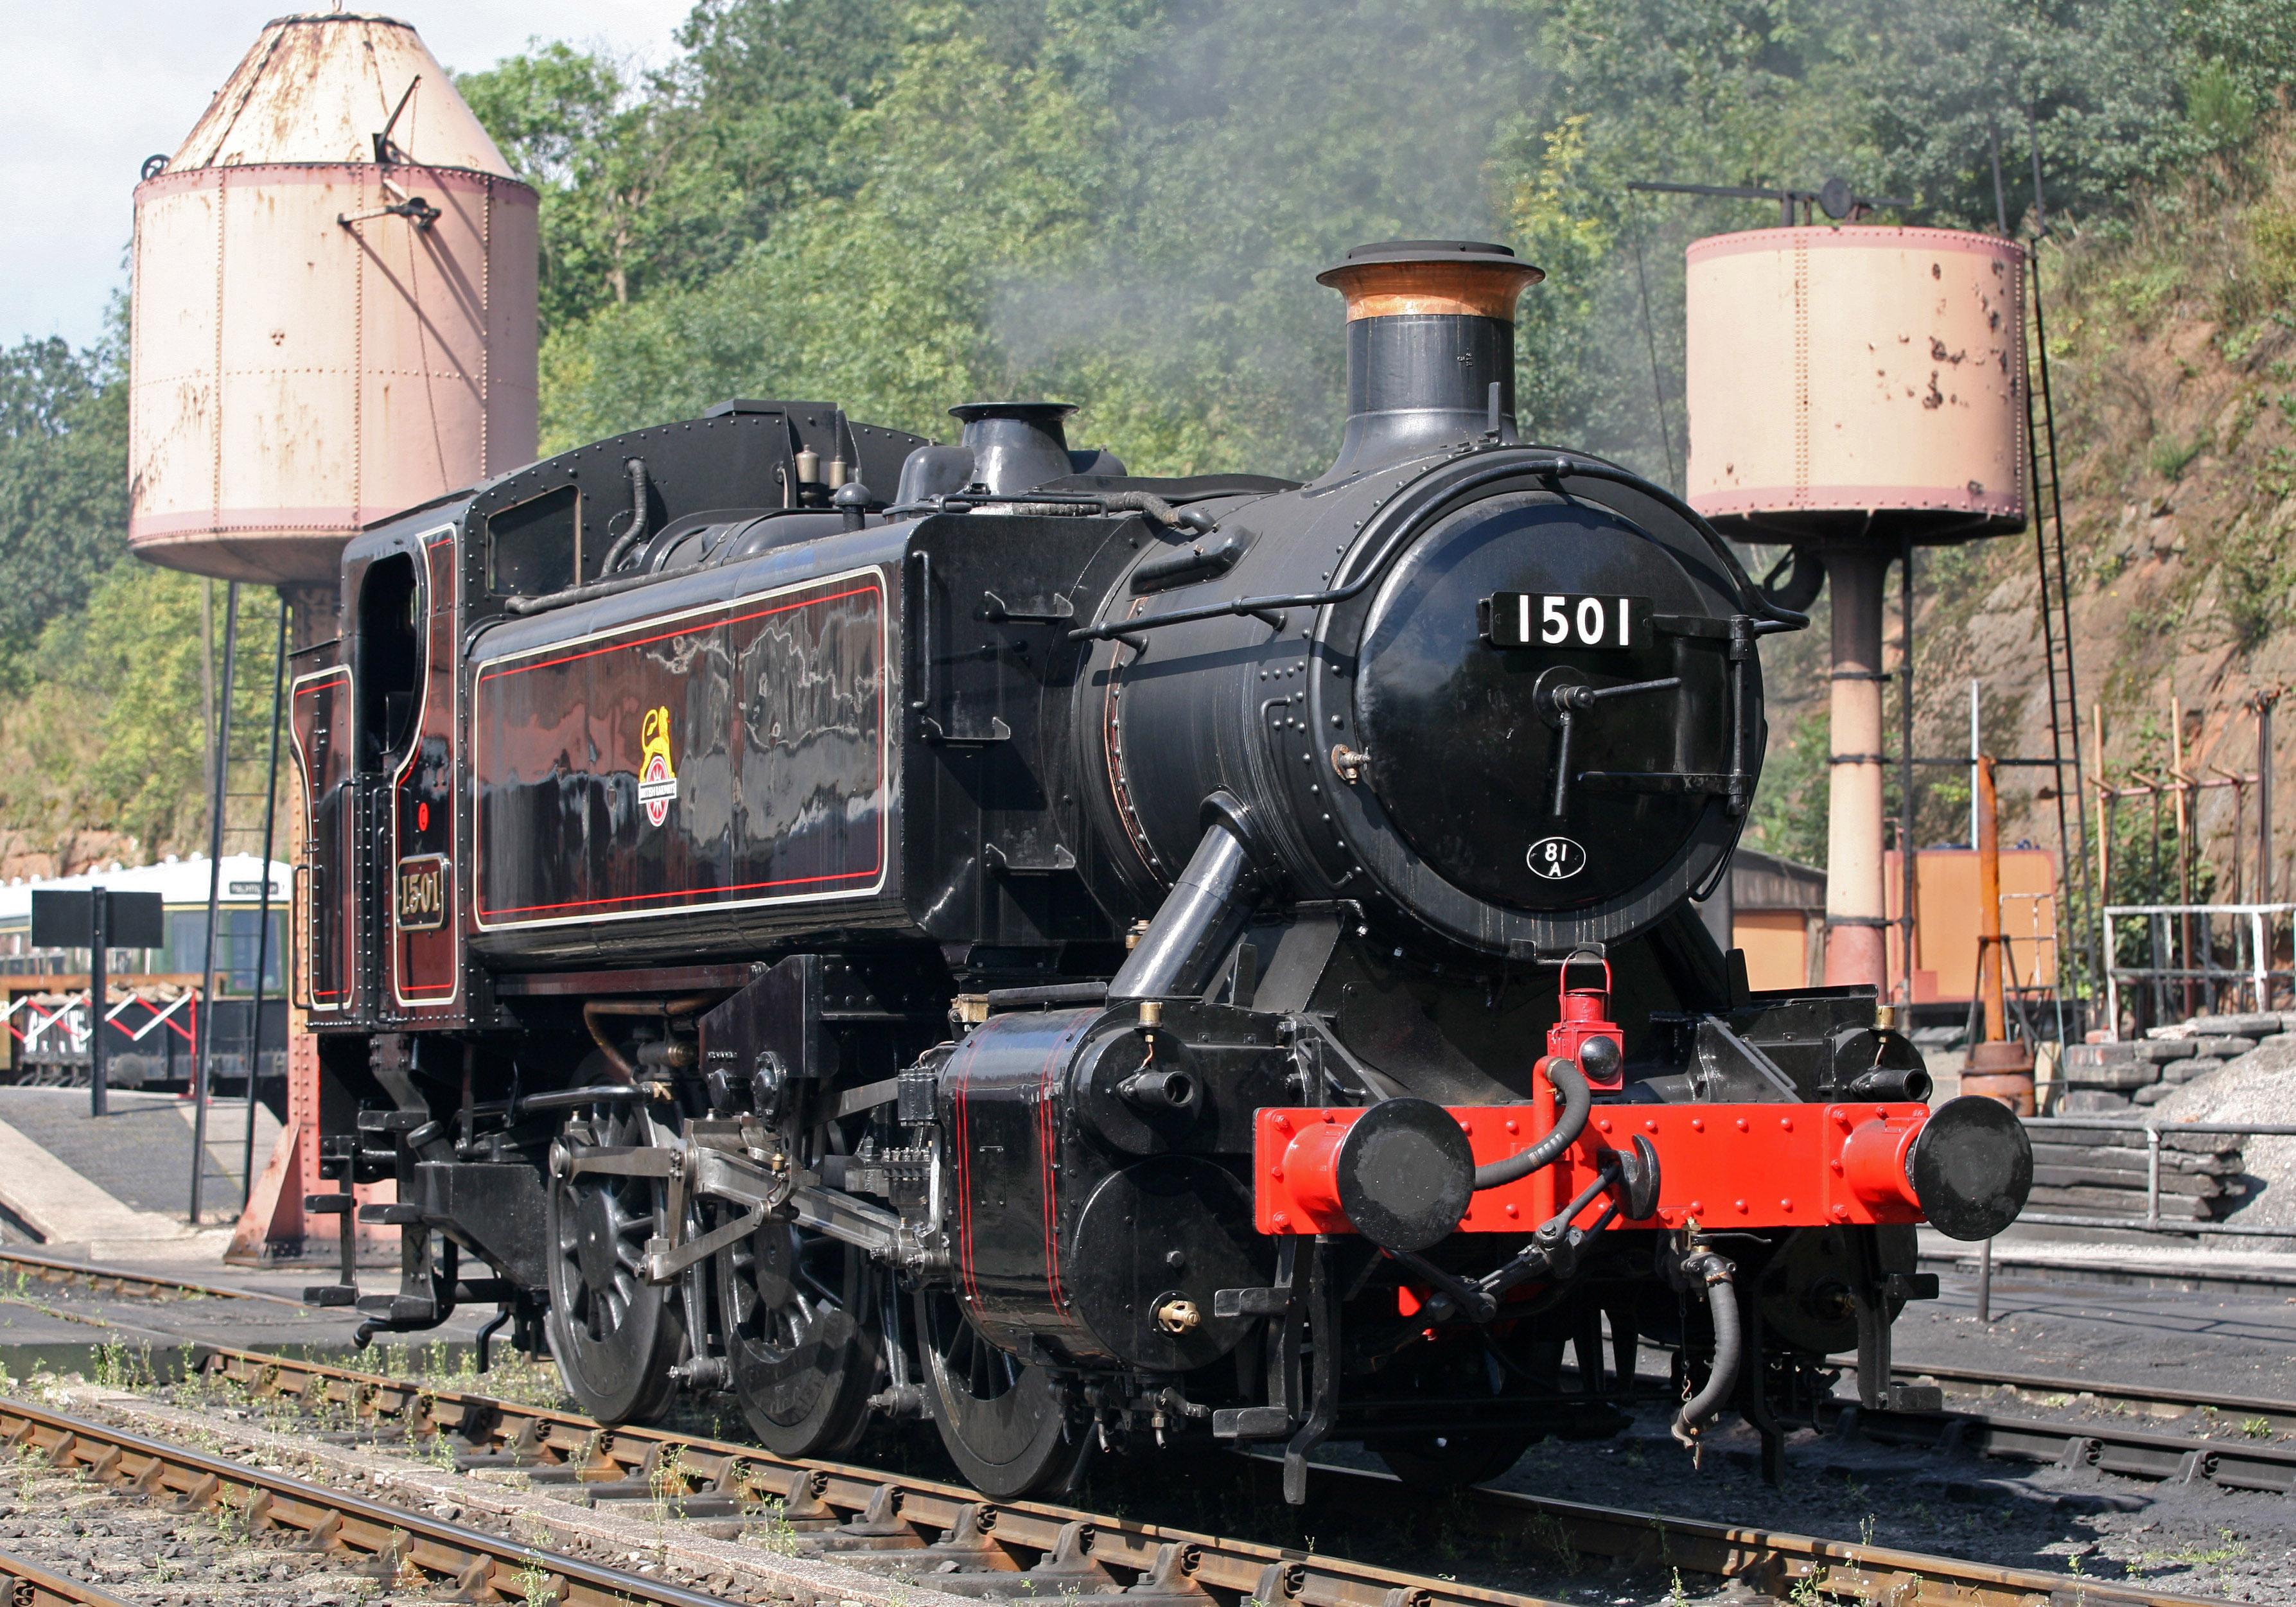 Owned by '1501 Pannier Tank Association' - on hire from Severn Valley  Railway